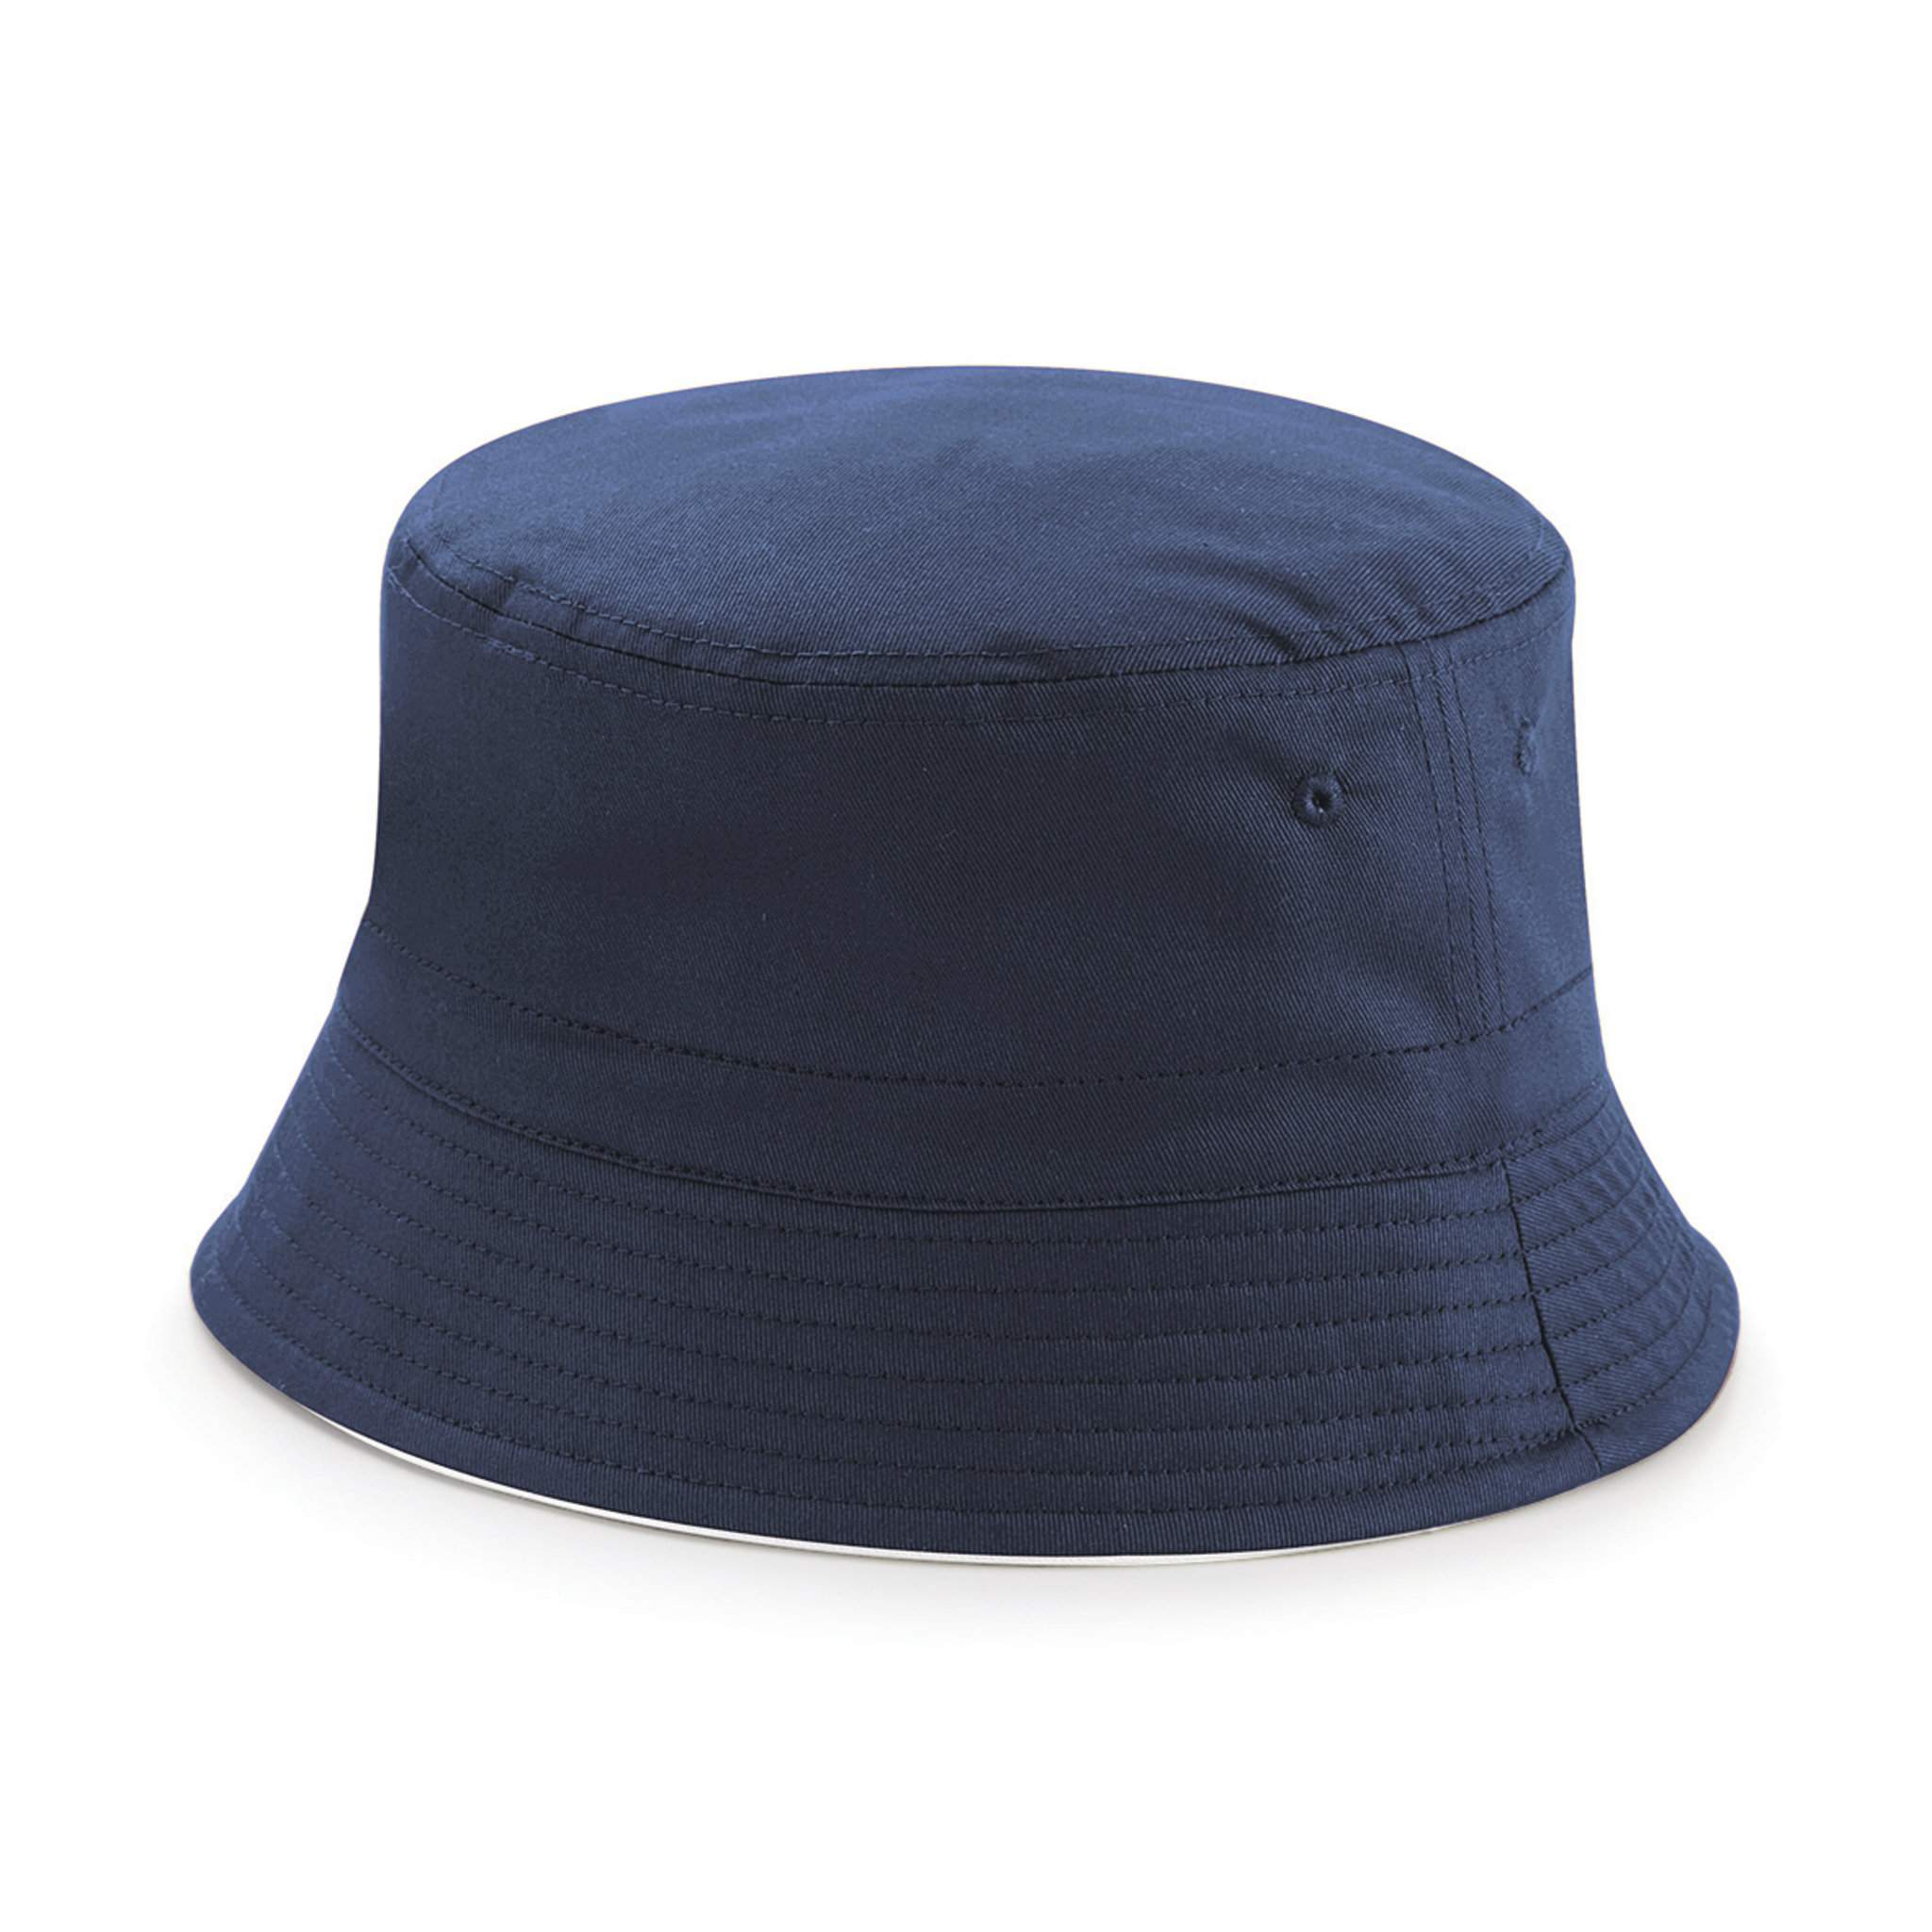 Chapeau publicitaire réversible Bucket french navy/blanc